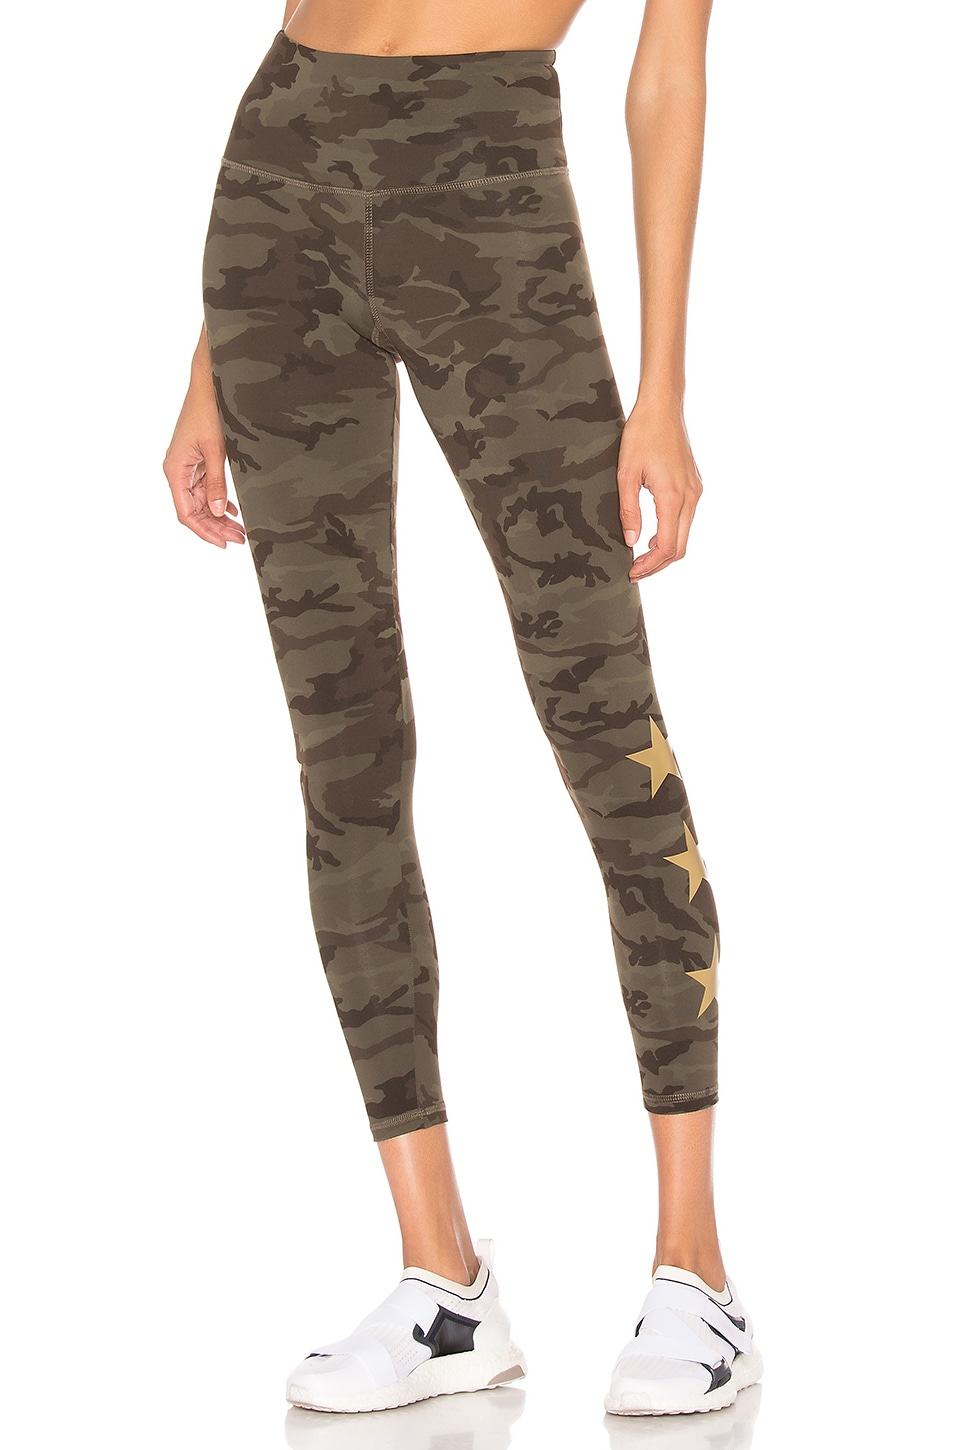 STRUT-THIS LEGGINGS LONGUEUR CHEVILLES STAR